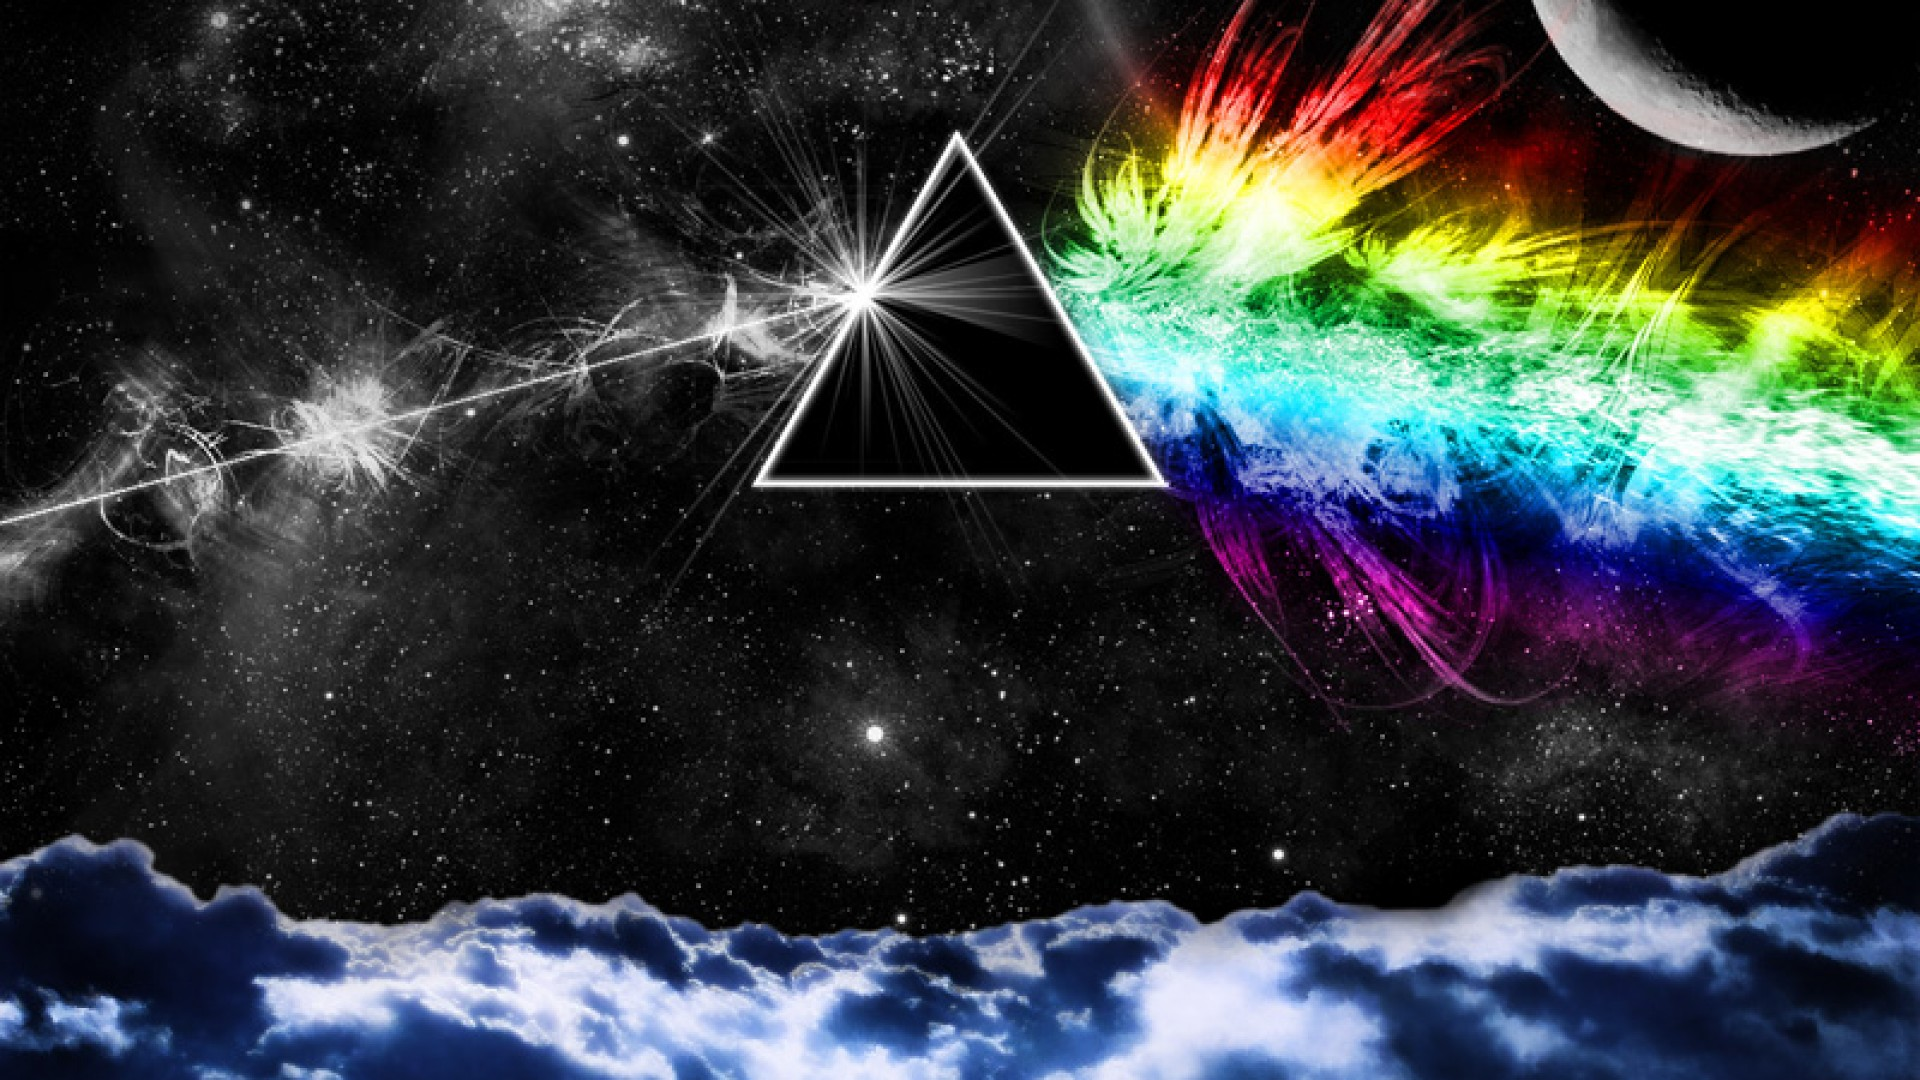 3d Car Wallpaper Full Hd Download Pink Floyd Dark Side Of The Moon Wallpaper Hd Gallery